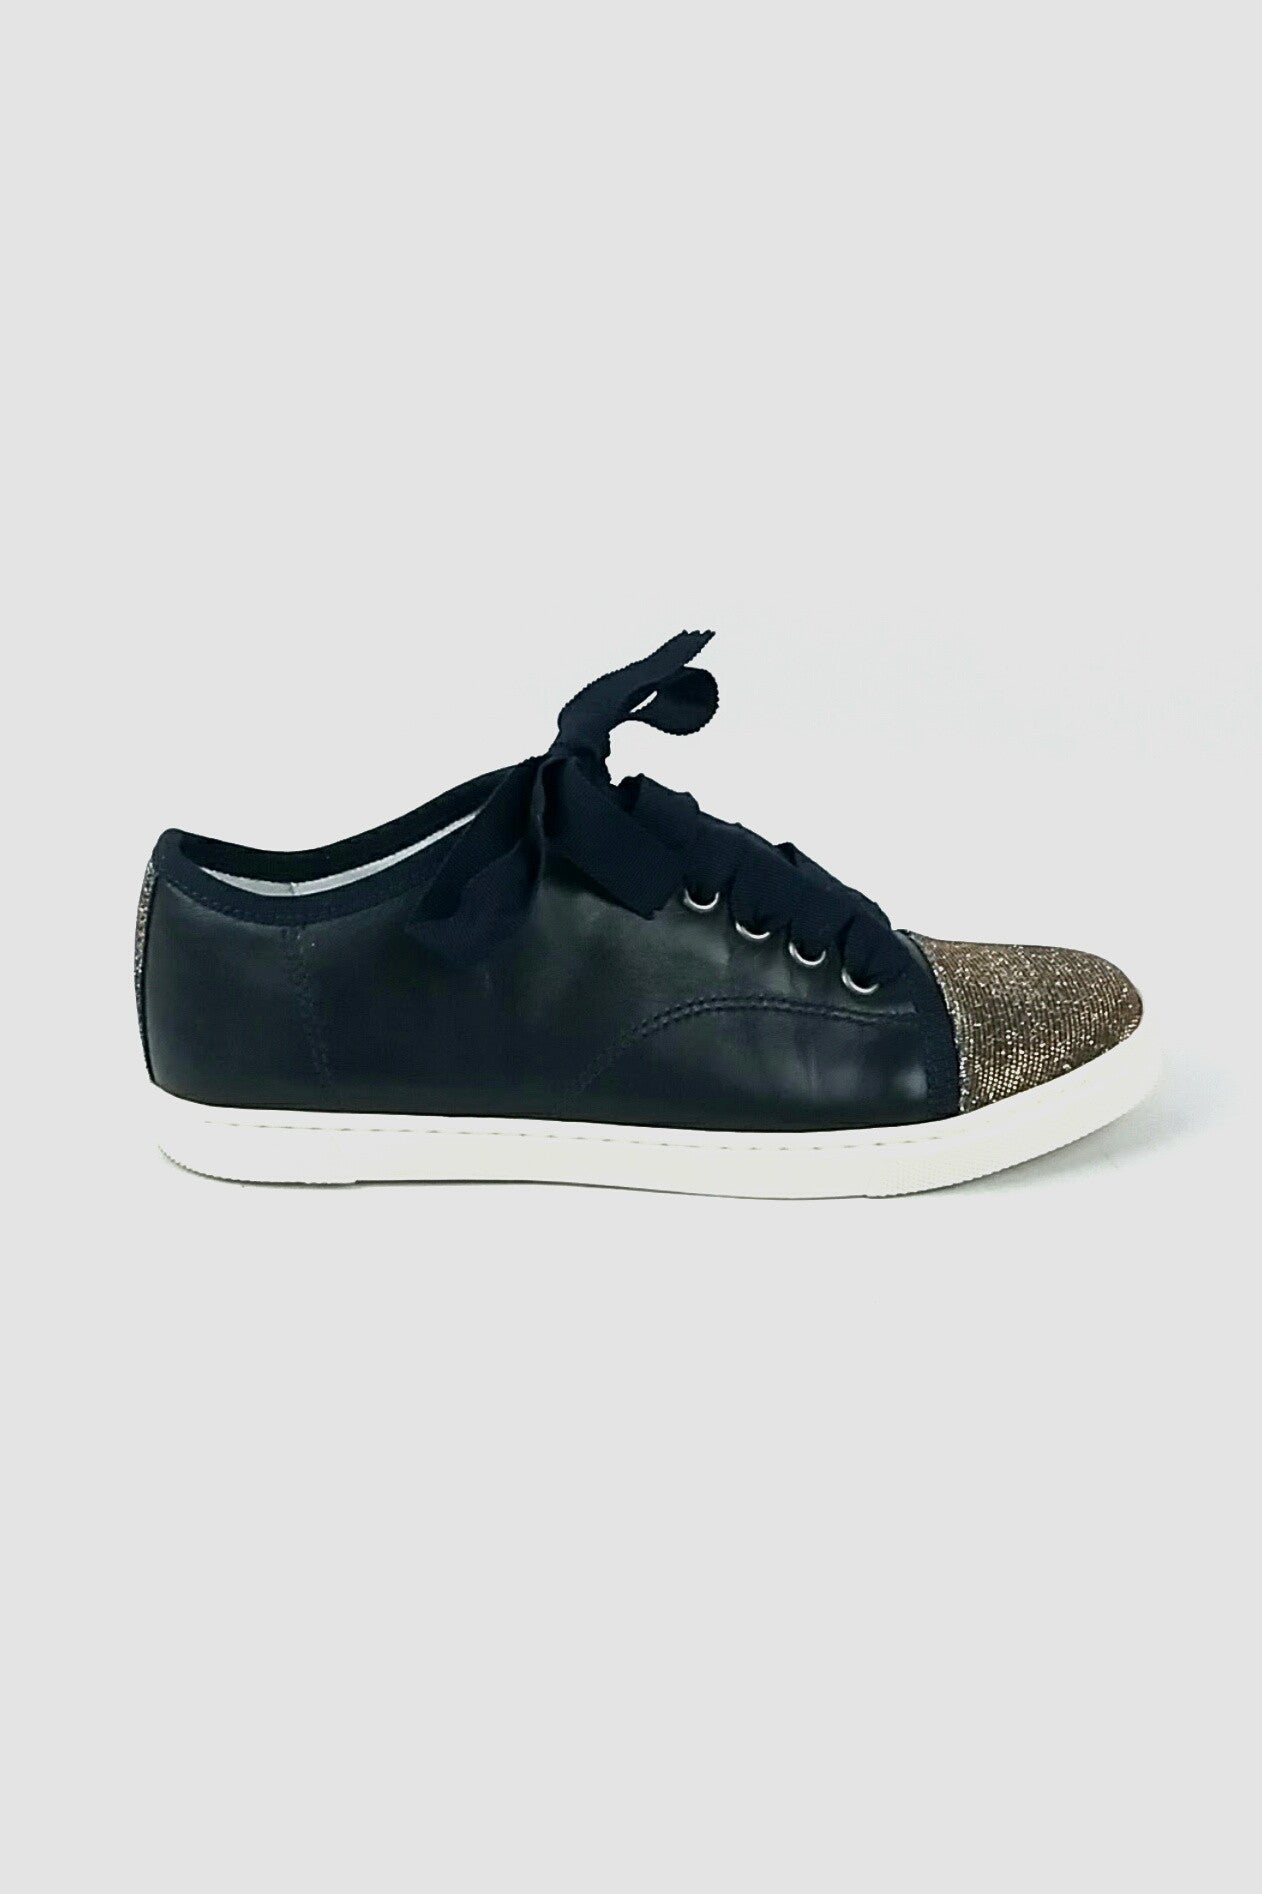 LANVIN Navy Leather Sneakers w/ Sparkle Toe Cap